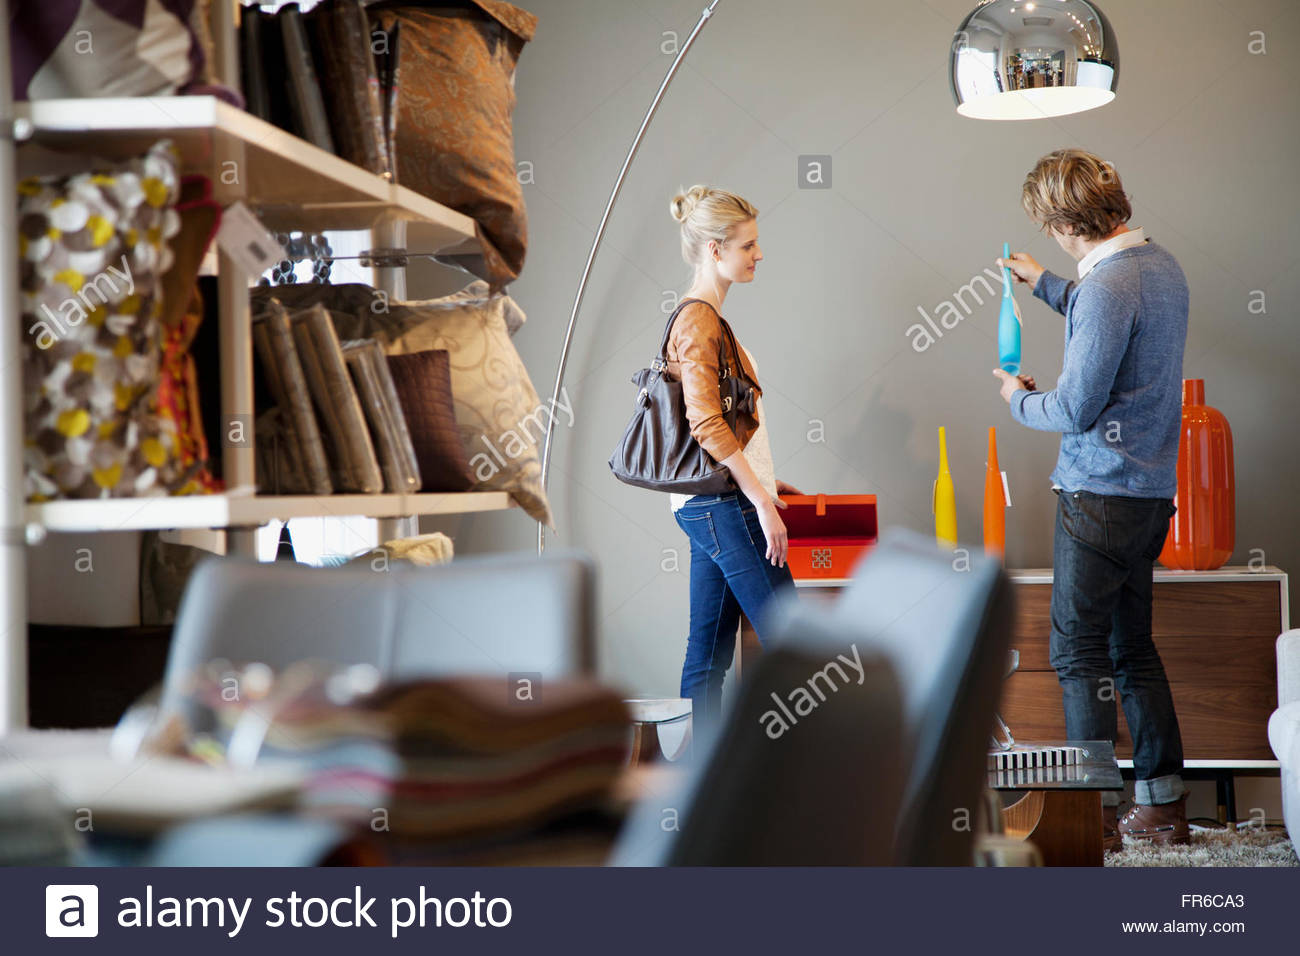 couple shopping for household projects - Stock Image